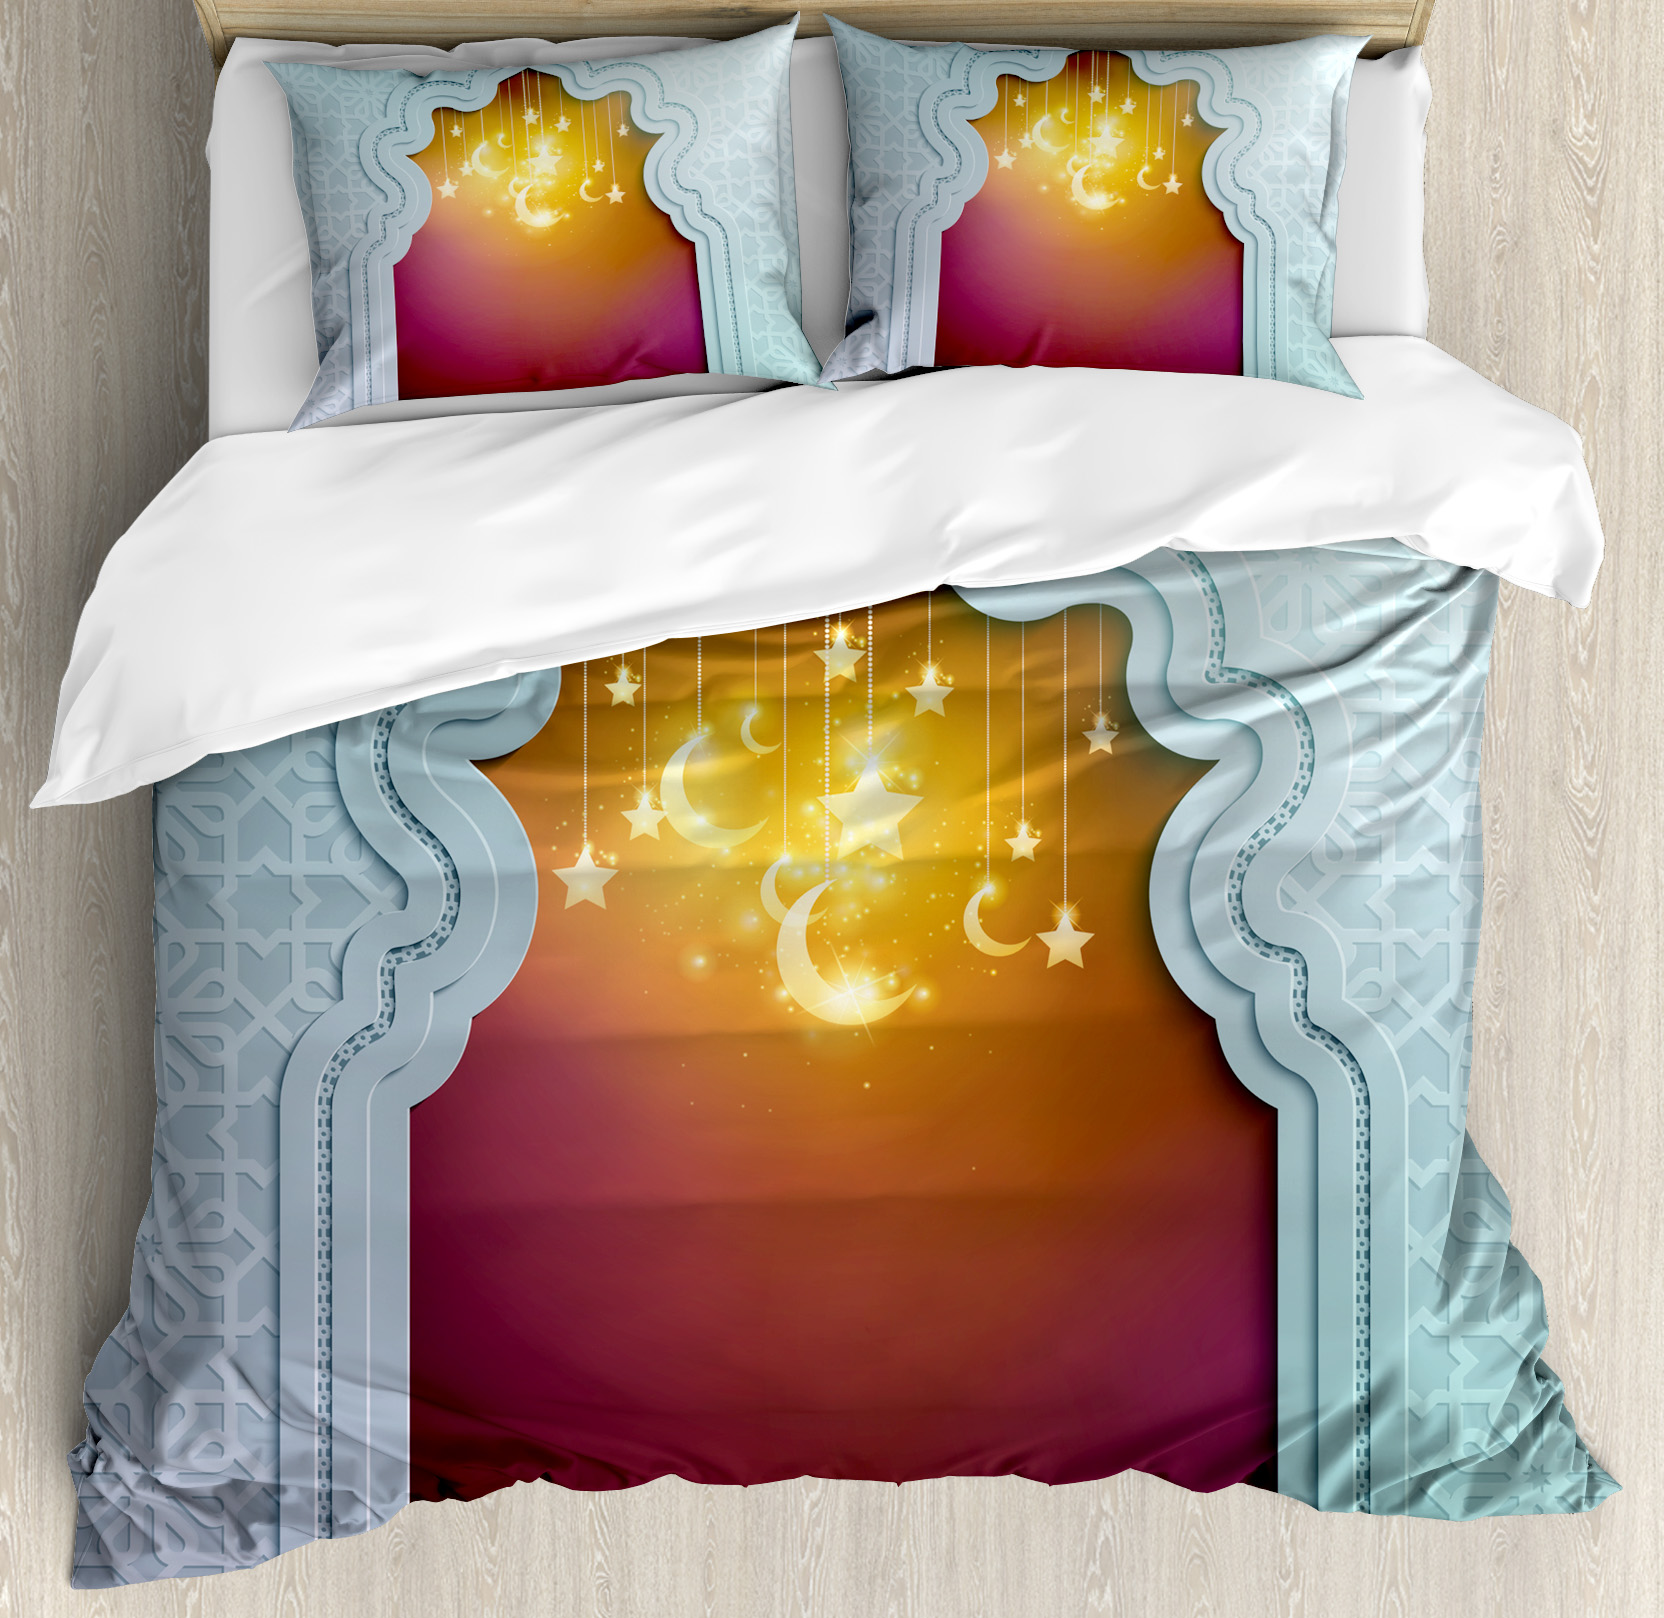 Moroccan Queen Size Duvet Cover Set, Mosque Door with Star and Moon Art Arabic... from Ramadan Decorations